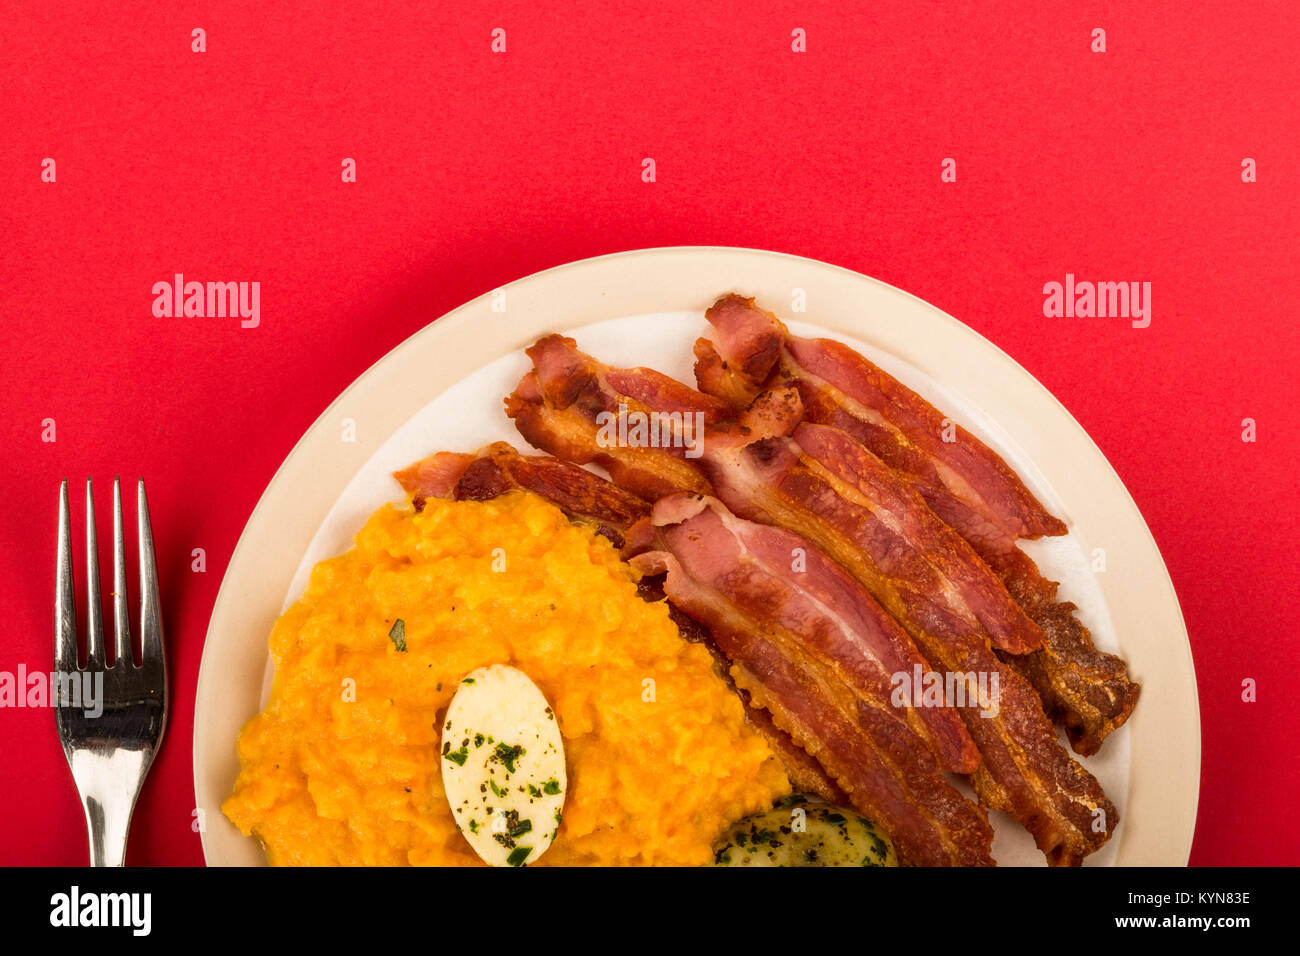 Norwegian Pork or Crispy Bacon With Mashed Swede and Boiled Potatoes Meal Against A Red Background - Stock Image